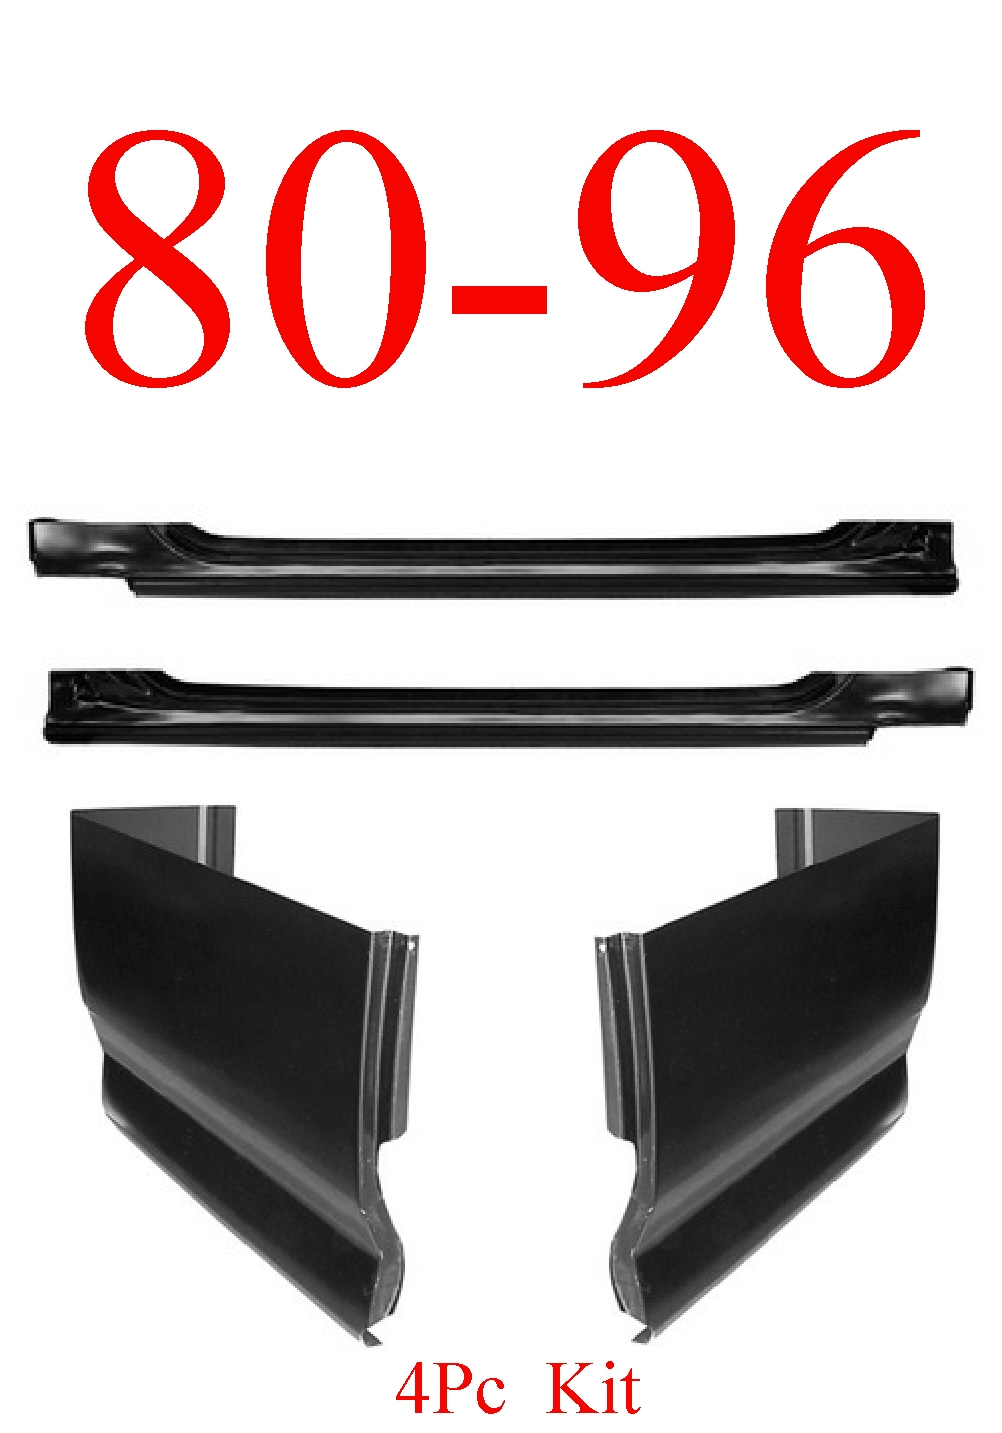 80-96 Ford 4Pc Slip-On Rocker & Extended Cab Corner Kit